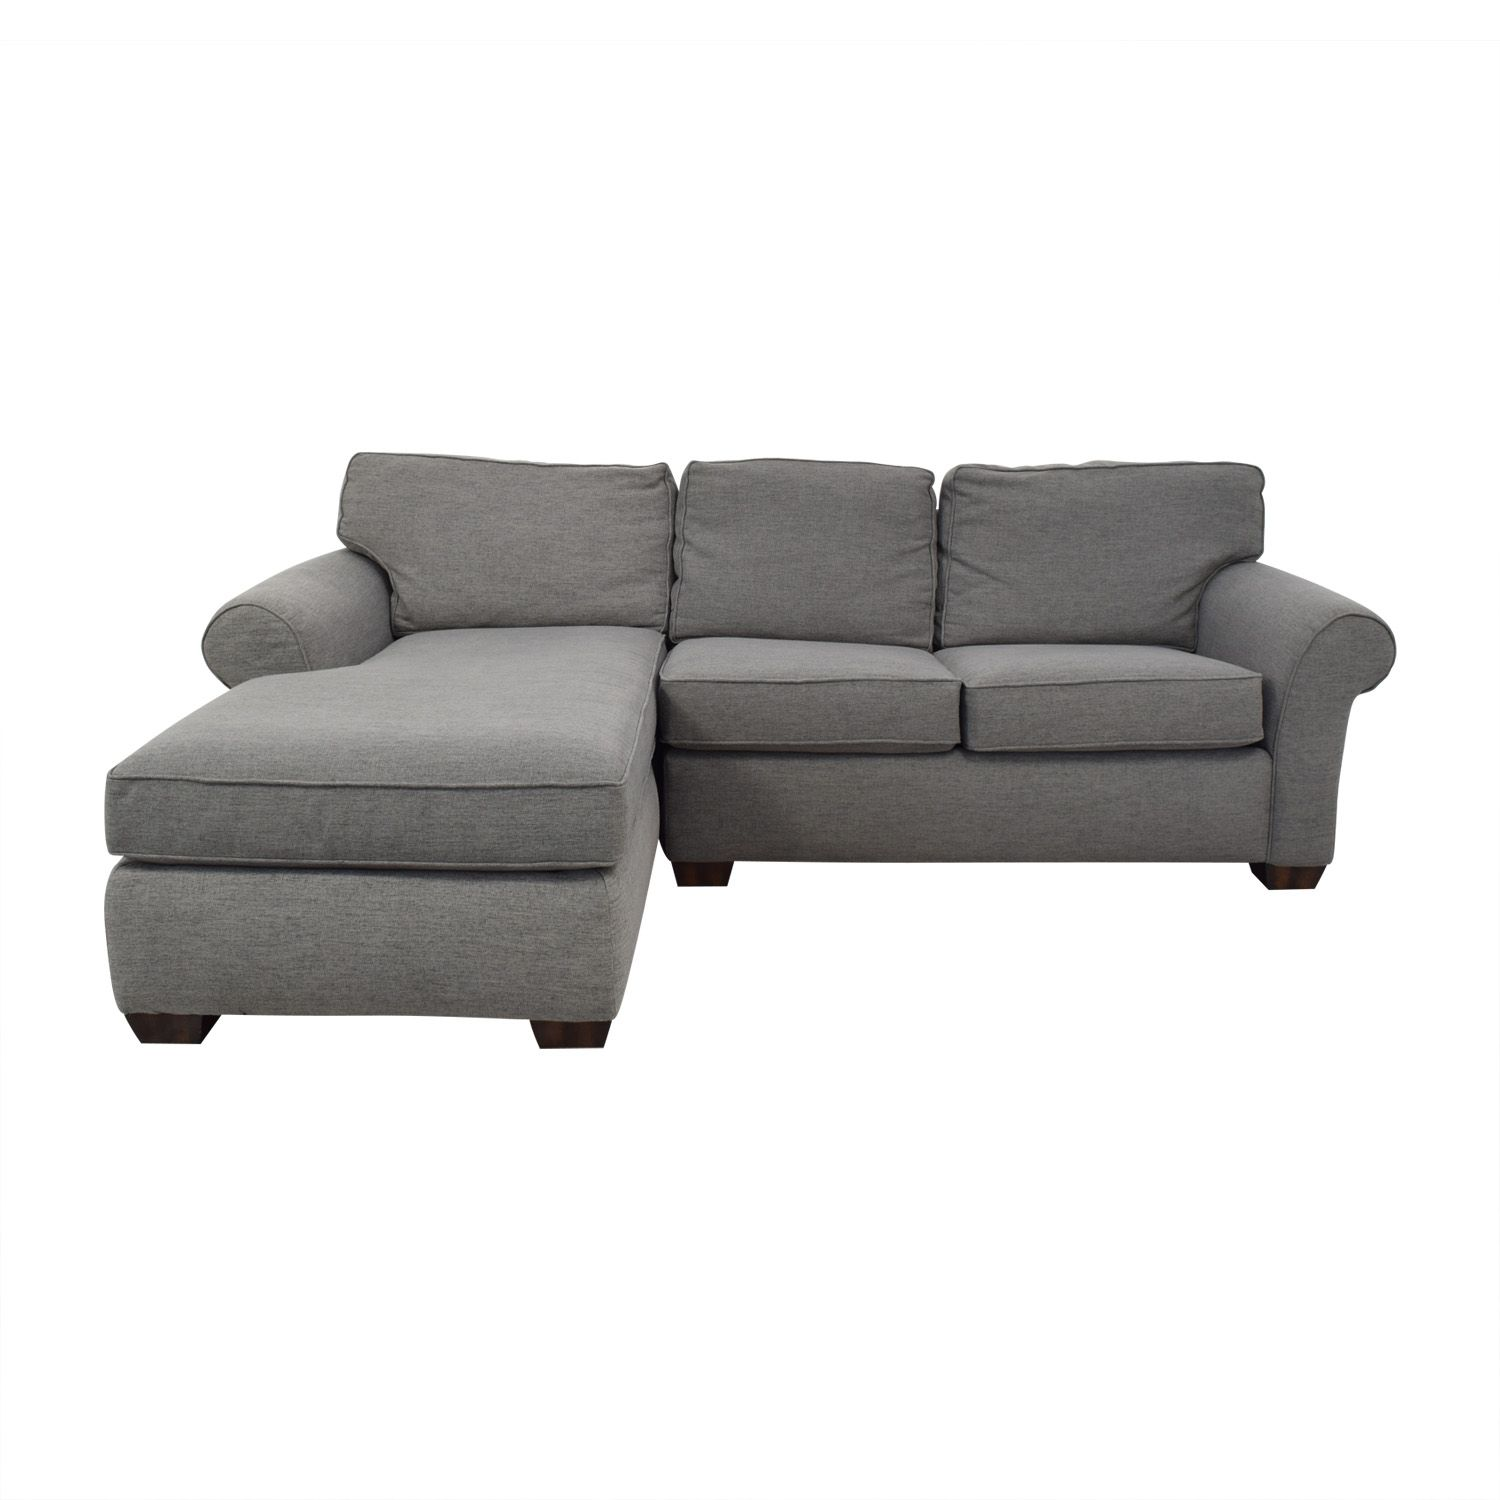 Flexsteel Sectional Sofa With Chaise In 2020 Sectional Sofa With Chaise Sectional Sofa Sectional Sofa With Recliner